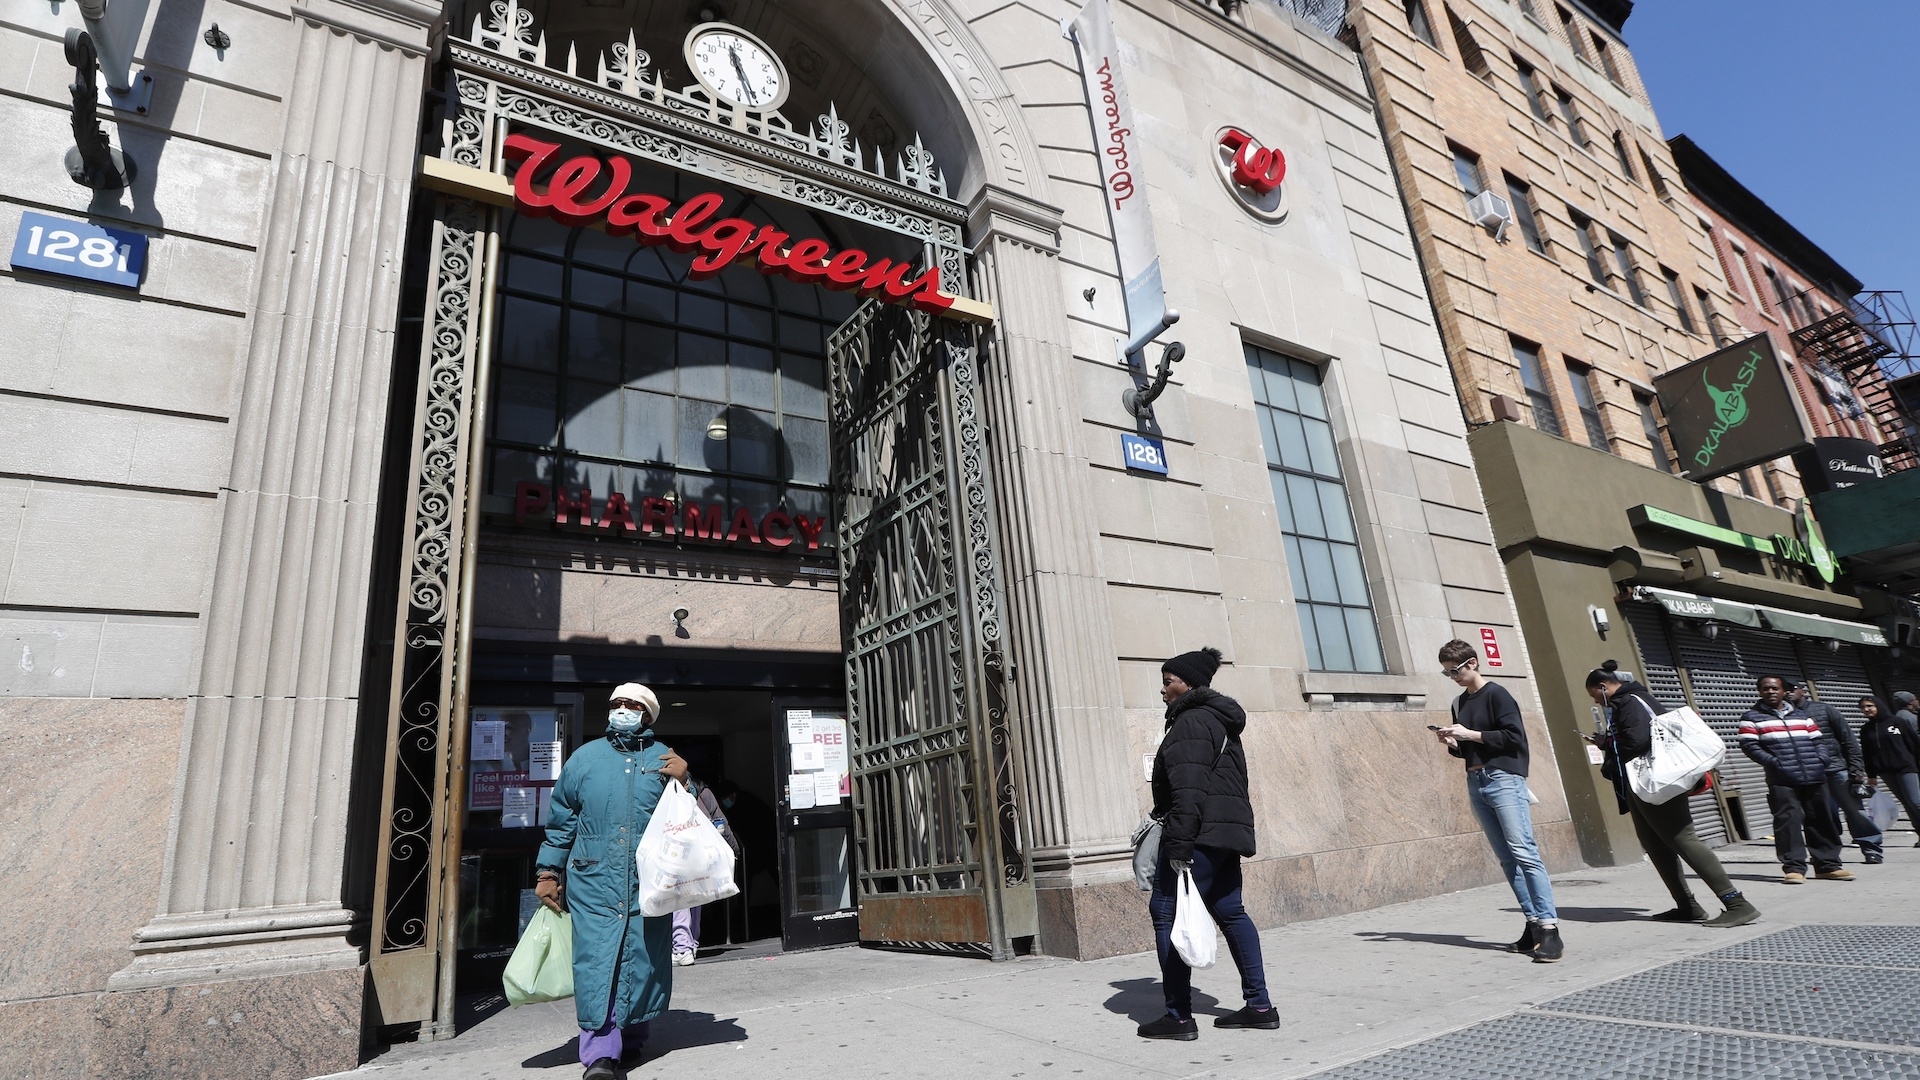 In this March 26, 2020 file photo, a woman leaves a Walgreens pharmacy that is enforcing social distancing rules by allowing only a certain numbers of people in as customers line up on the sidewalk outside the store in New York. The coronavirus pandemic pushed the drugstore chain to a .7-billion loss in its fiscal third quarter, as customers stayed home to avoid the virus or consolidated their shopping to grocery stores. (AP Photo/Kathy Willens, File)